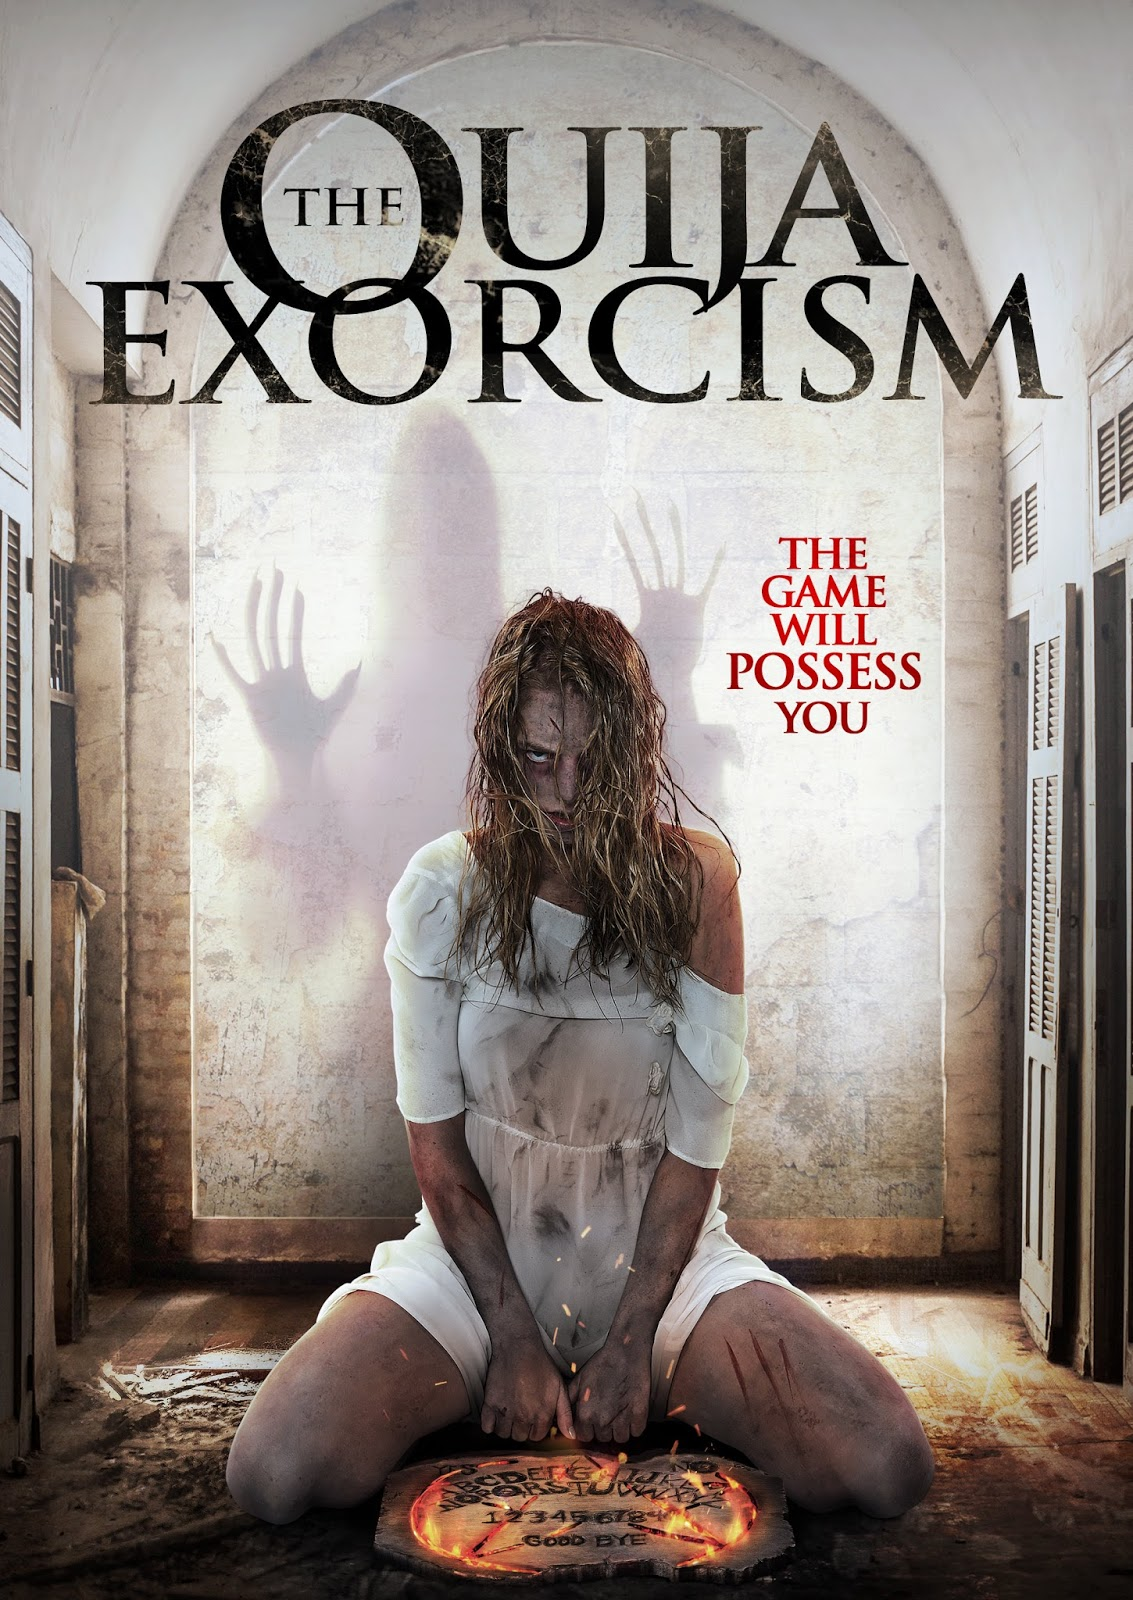 The Ouija Exorcism 2015 - Full (HDRIP)